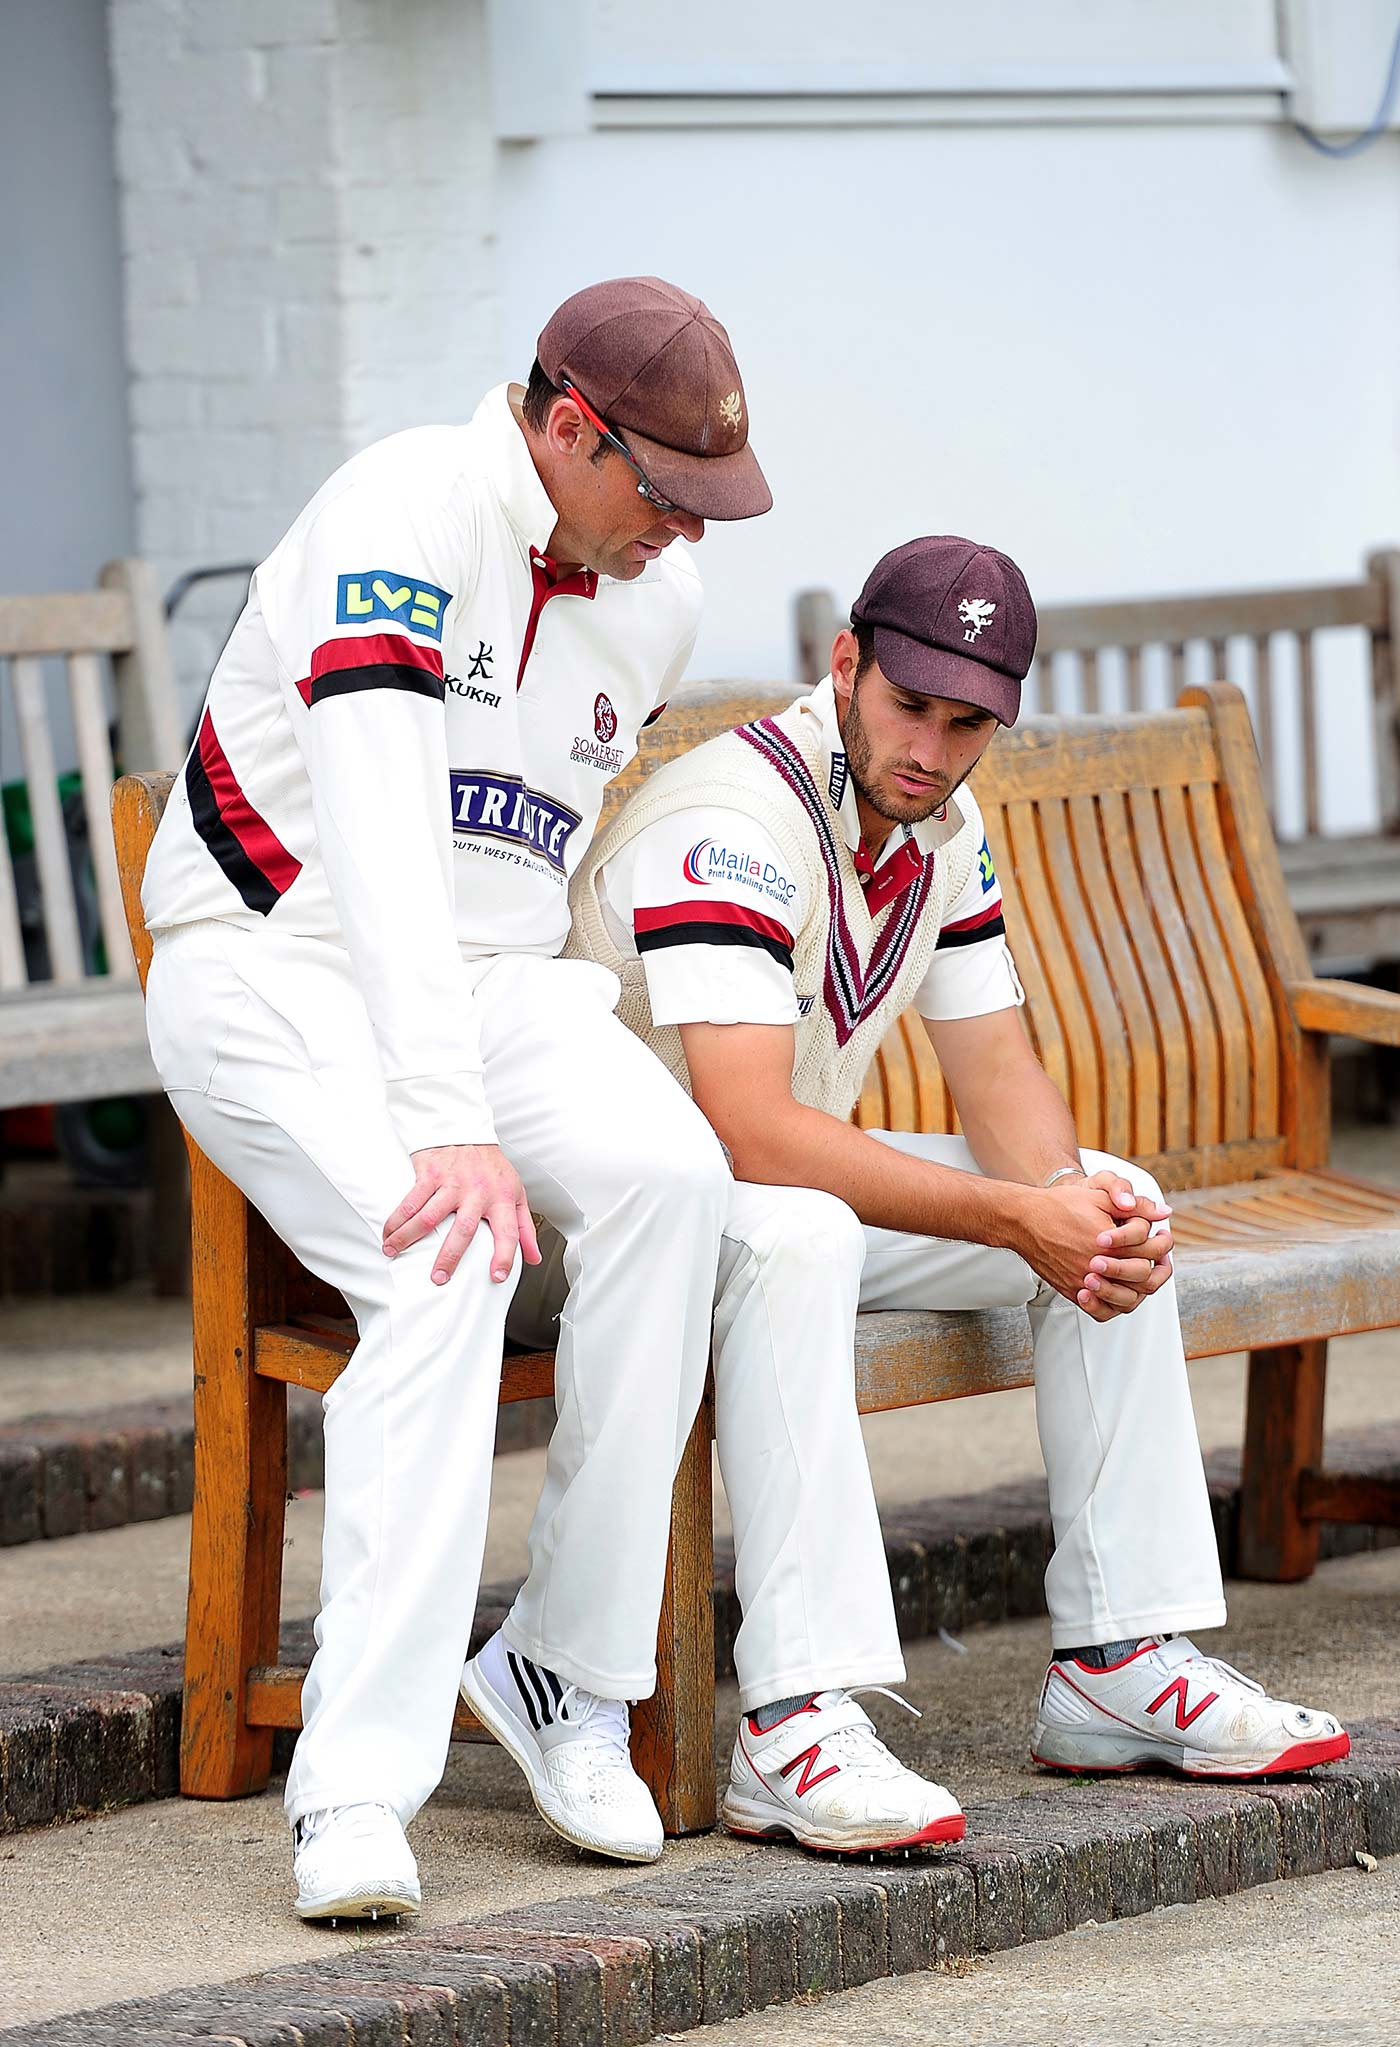 The elder statesman: Trescothick, seen here with Lewis Gregory, is one of the oldest players on the county circuit